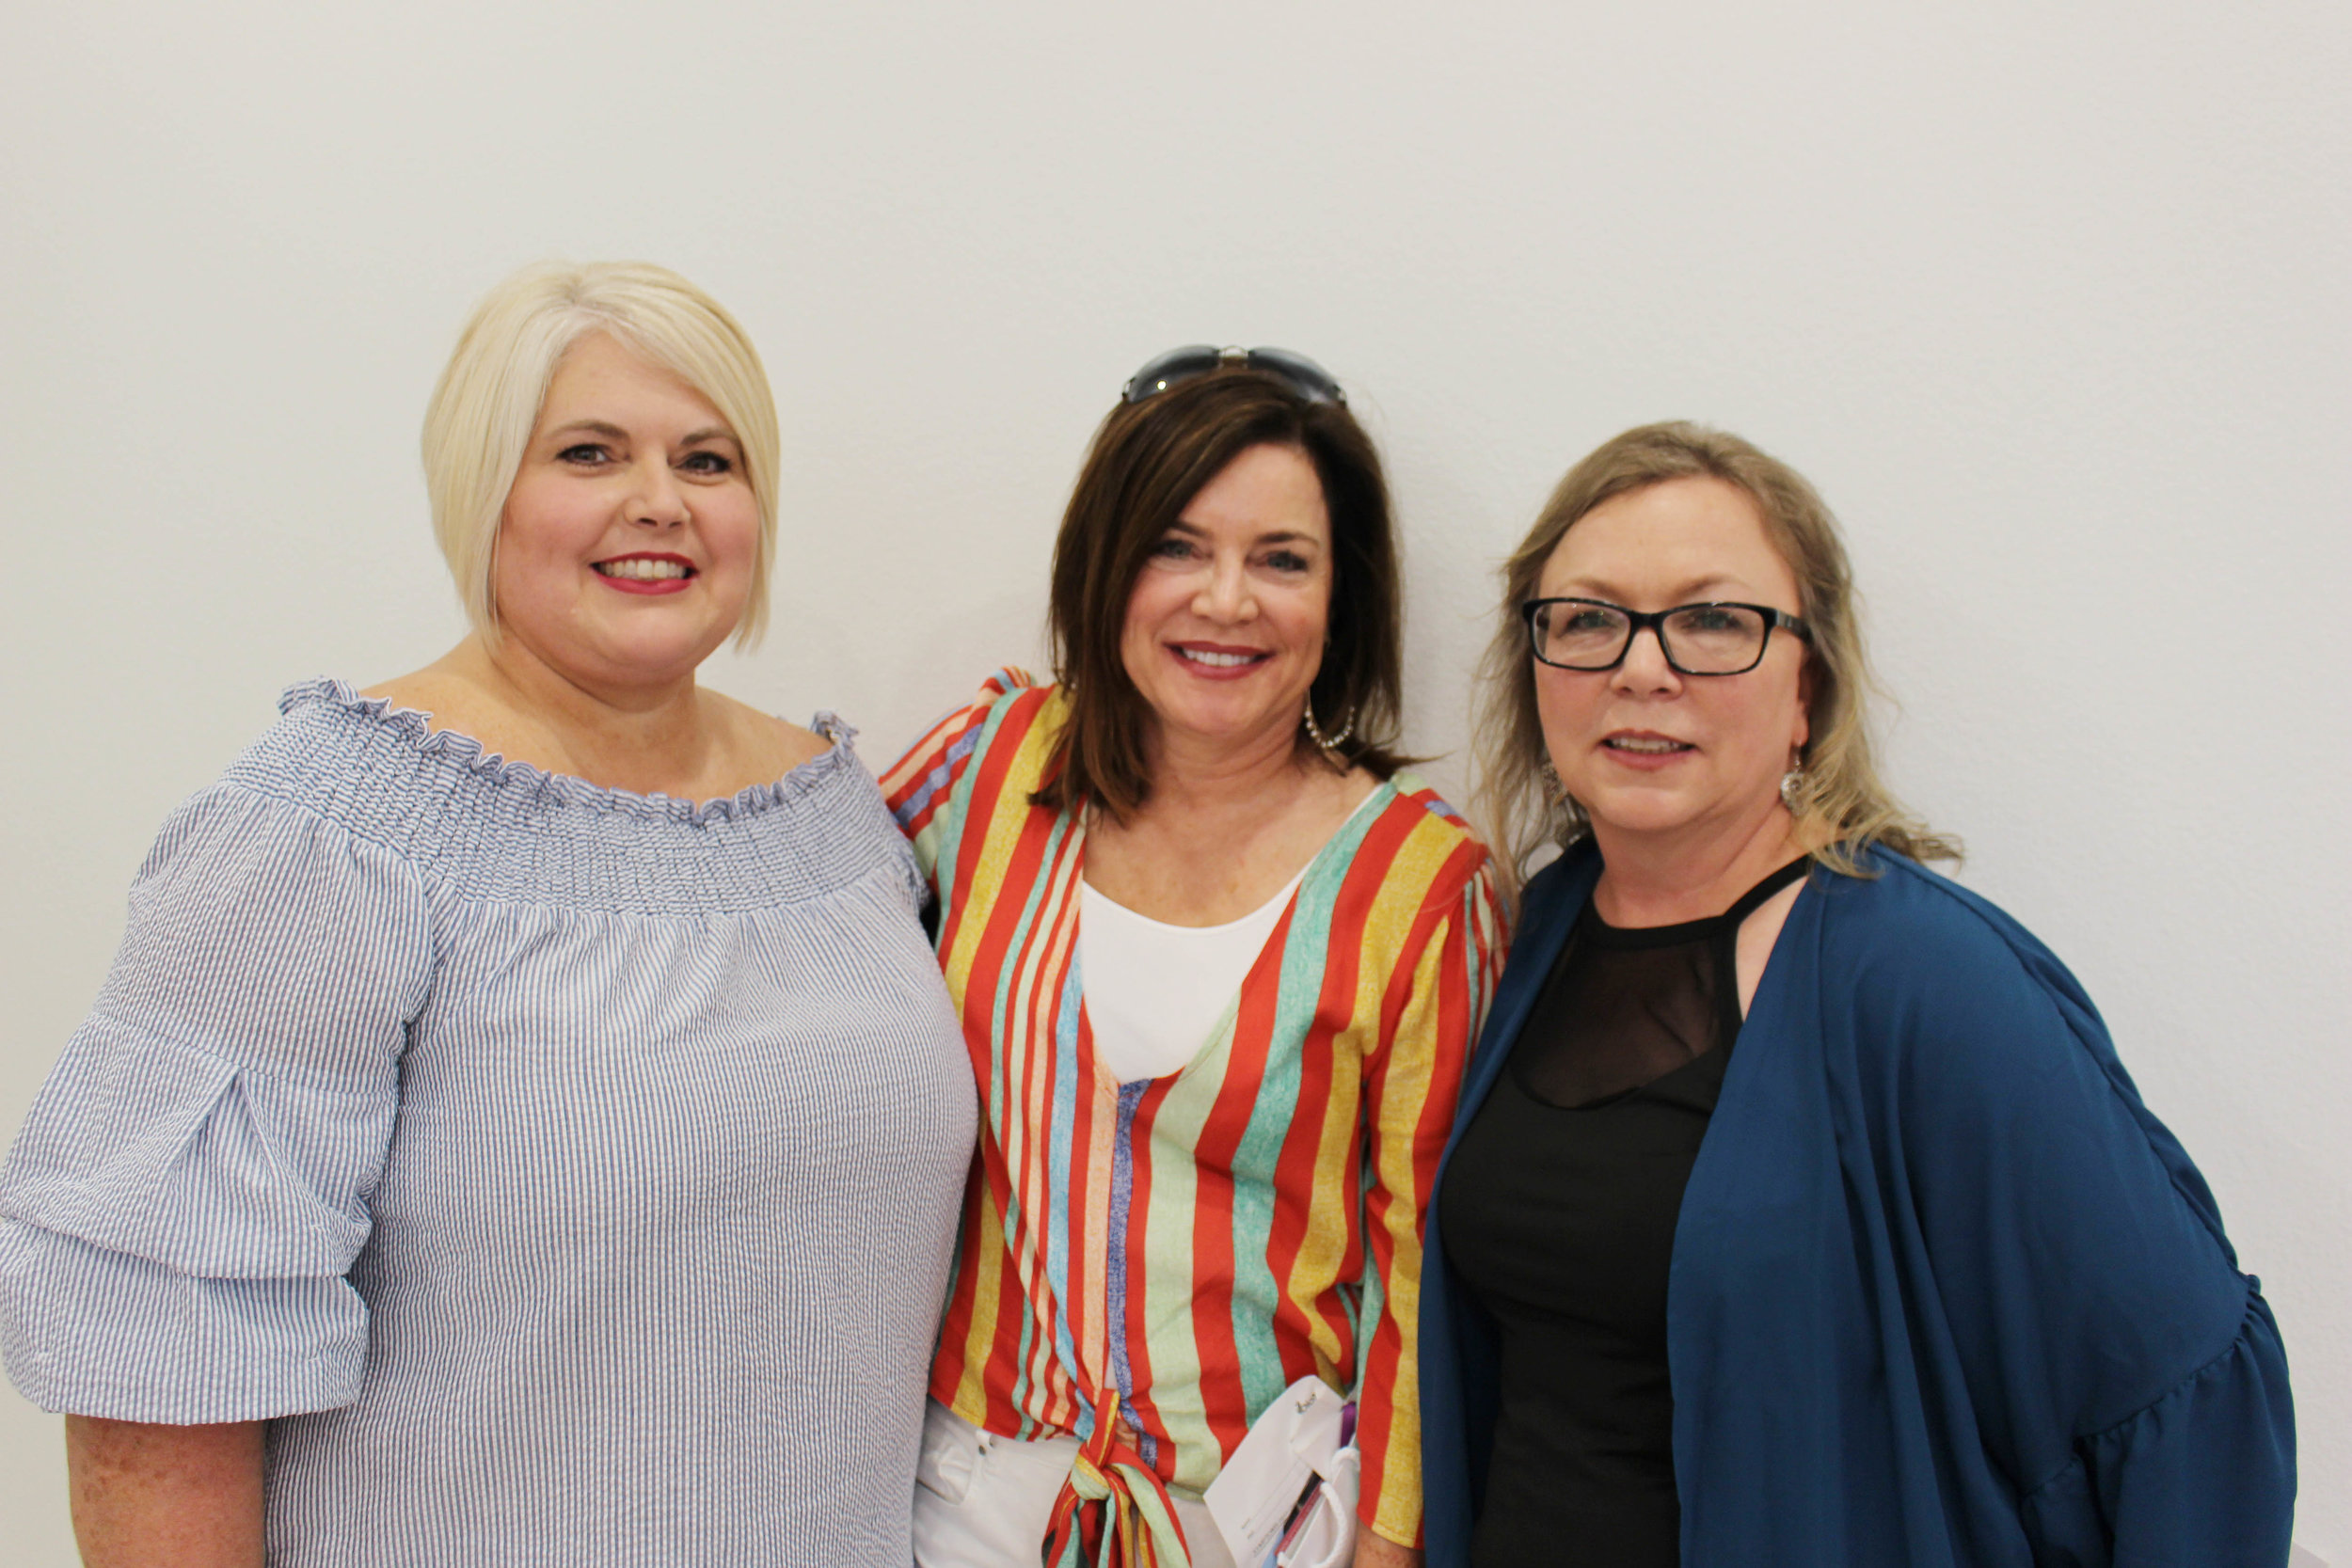 Shona Gross, Brenda Dudley and Tammy Beggs